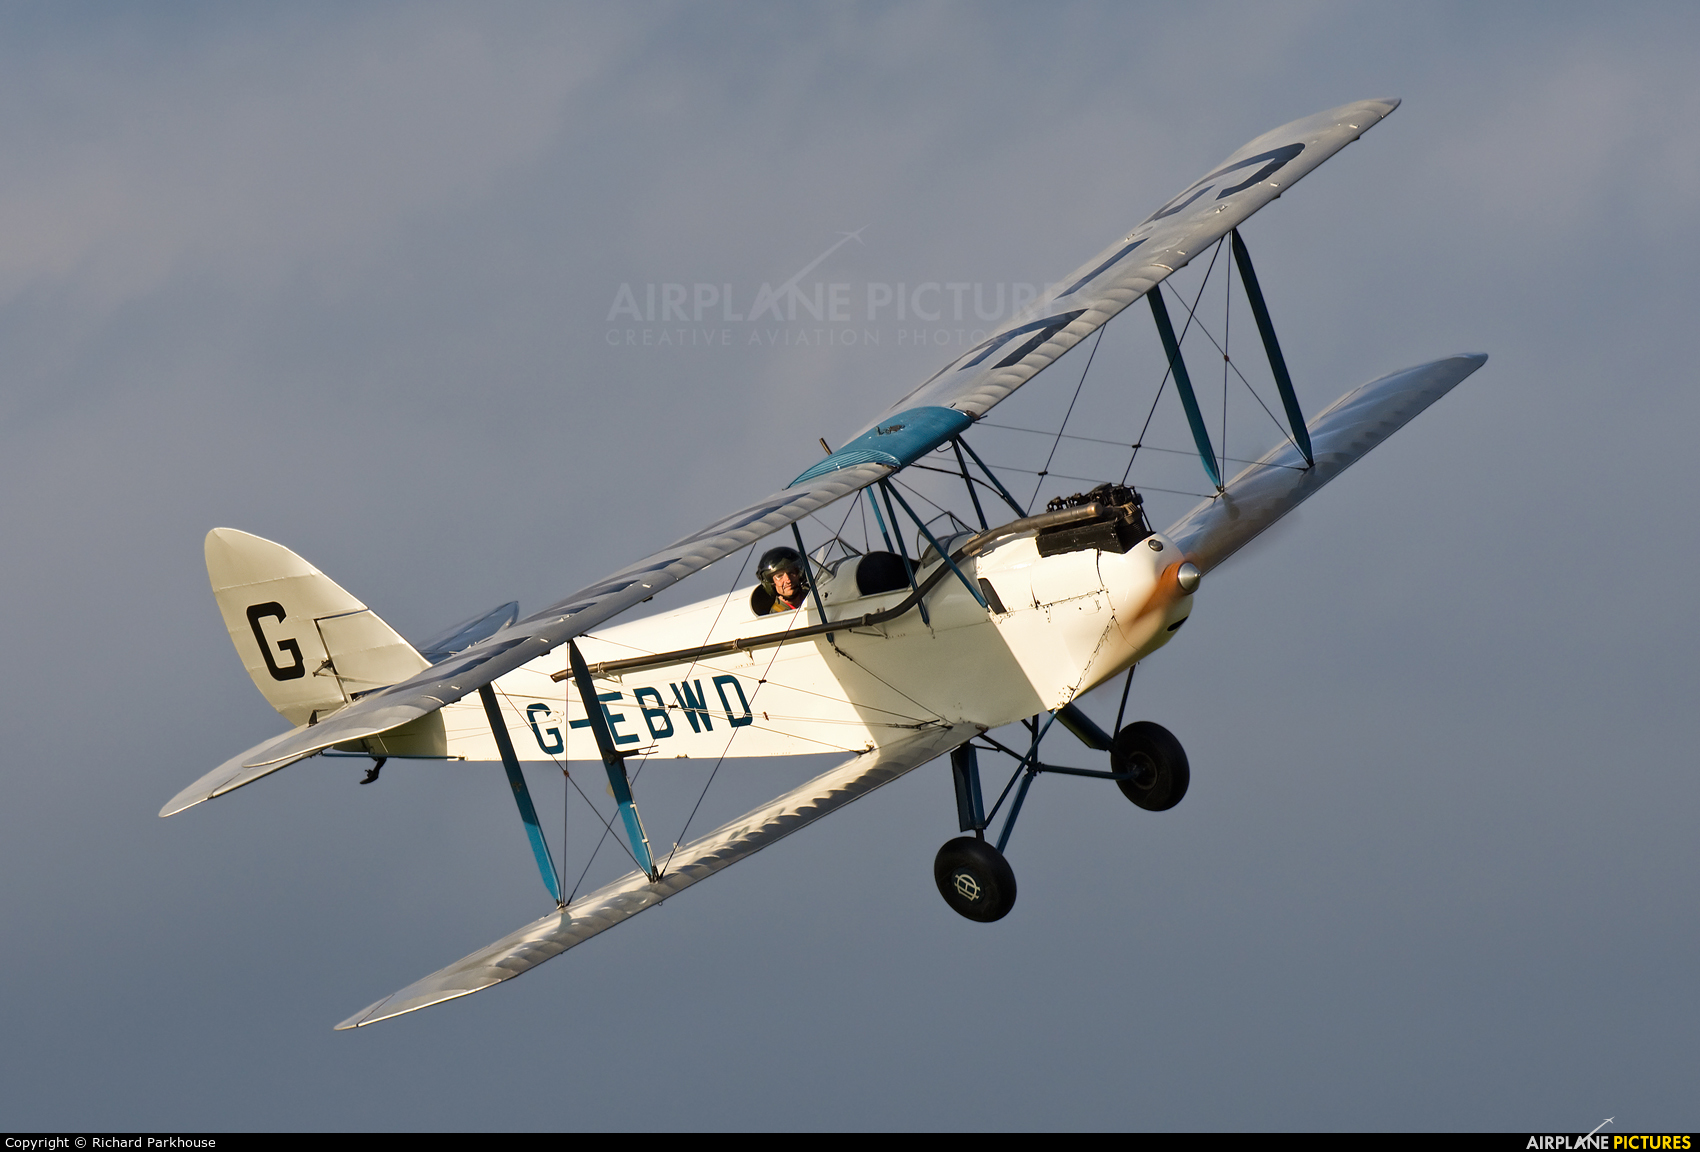 The Shuttleworth Collection G-EBWD aircraft at Old Warden